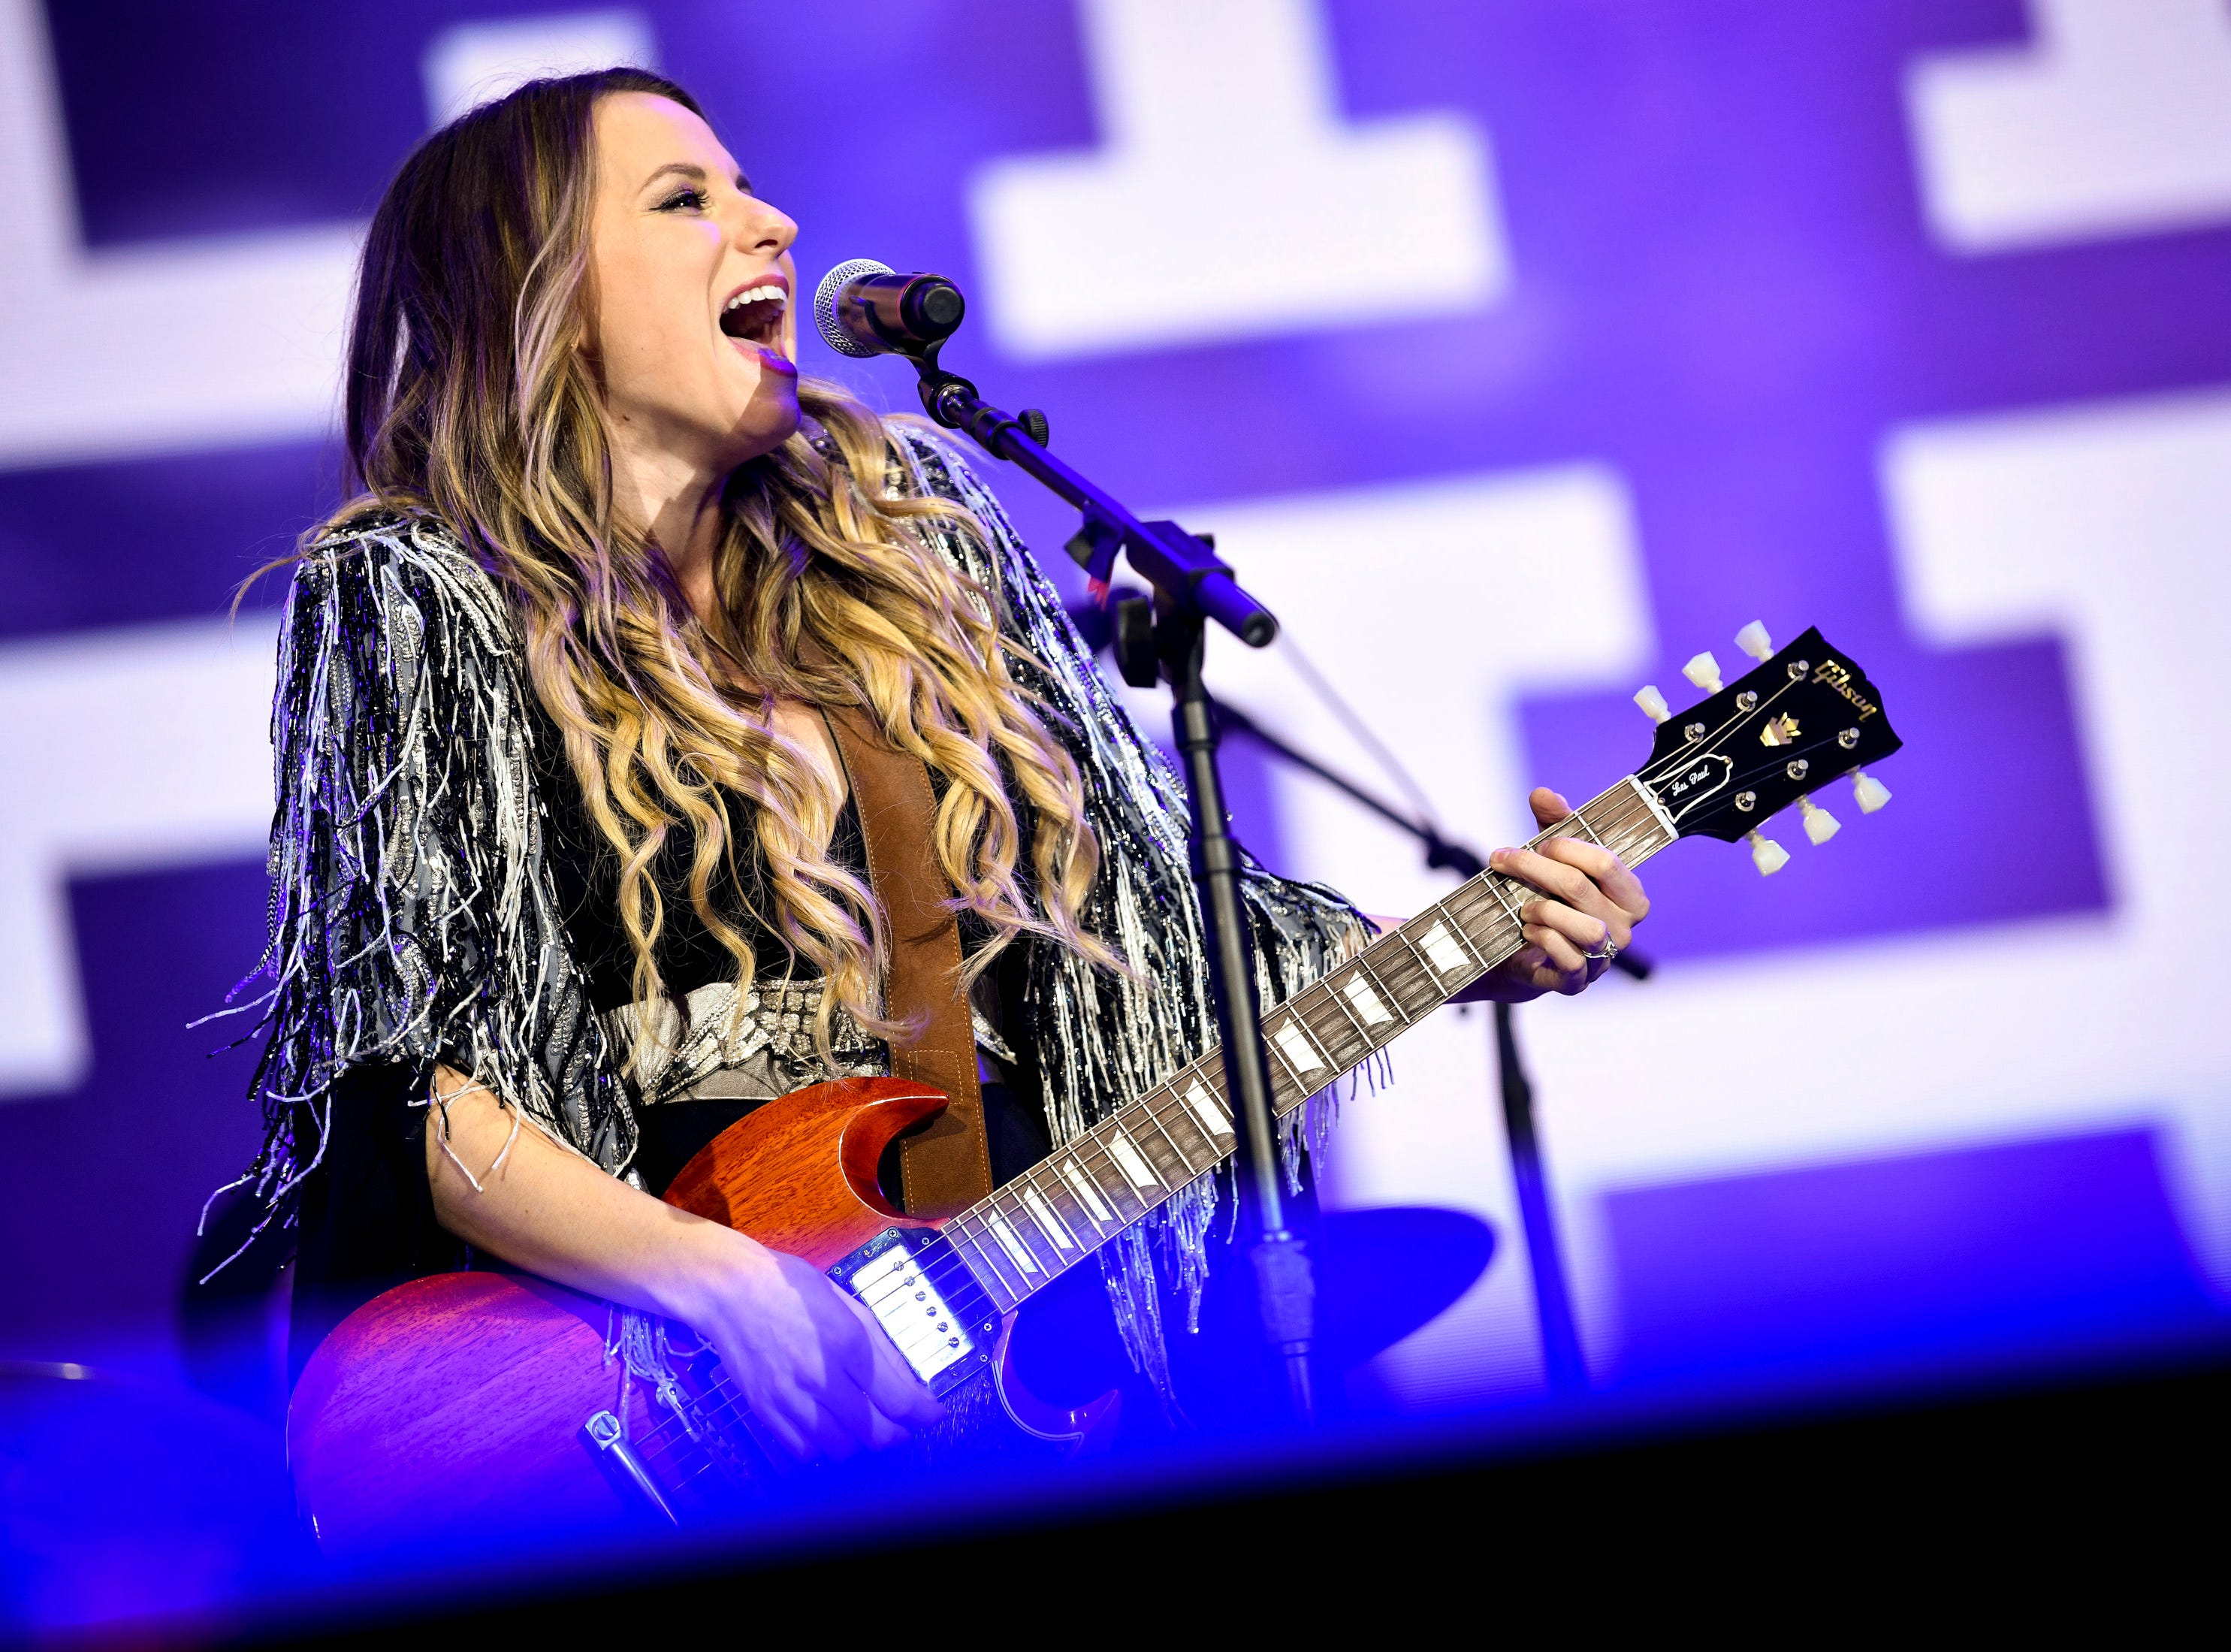 Caitlyn Smith performs during the Jack Daniel's Music City Midnight: New Year's Eve event at Bicentennial Capitol Mall State Park in Nashville, Tenn., Monday, Dec. 31, 2018.